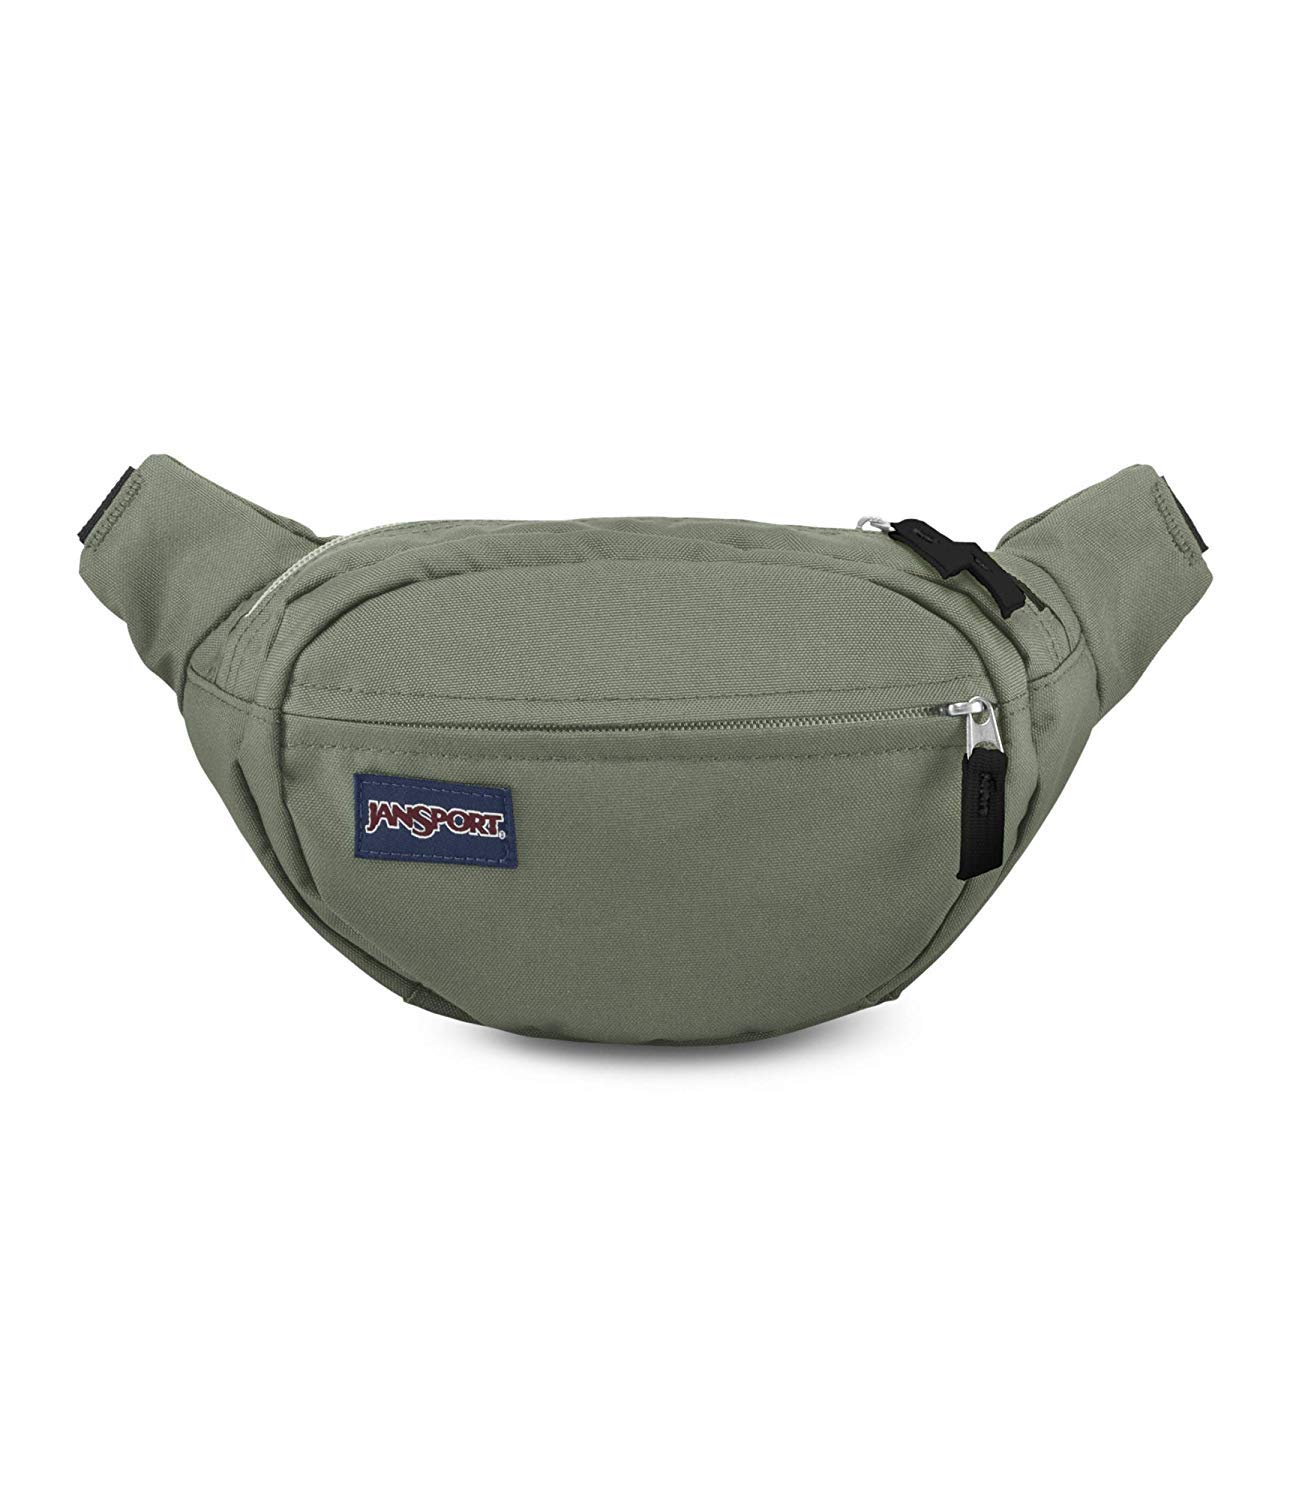 JanSport Fifth Ave Fanny Pack (GR-Muted Green)